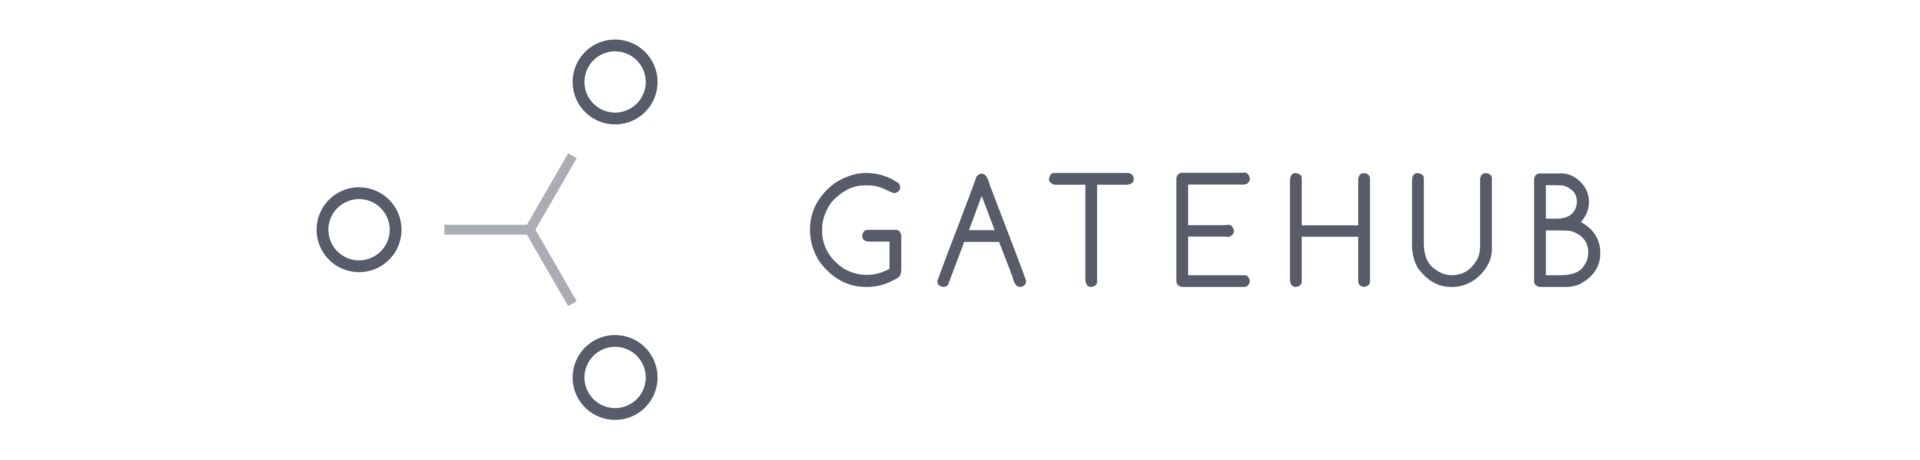 Gatehub Wallet Logo